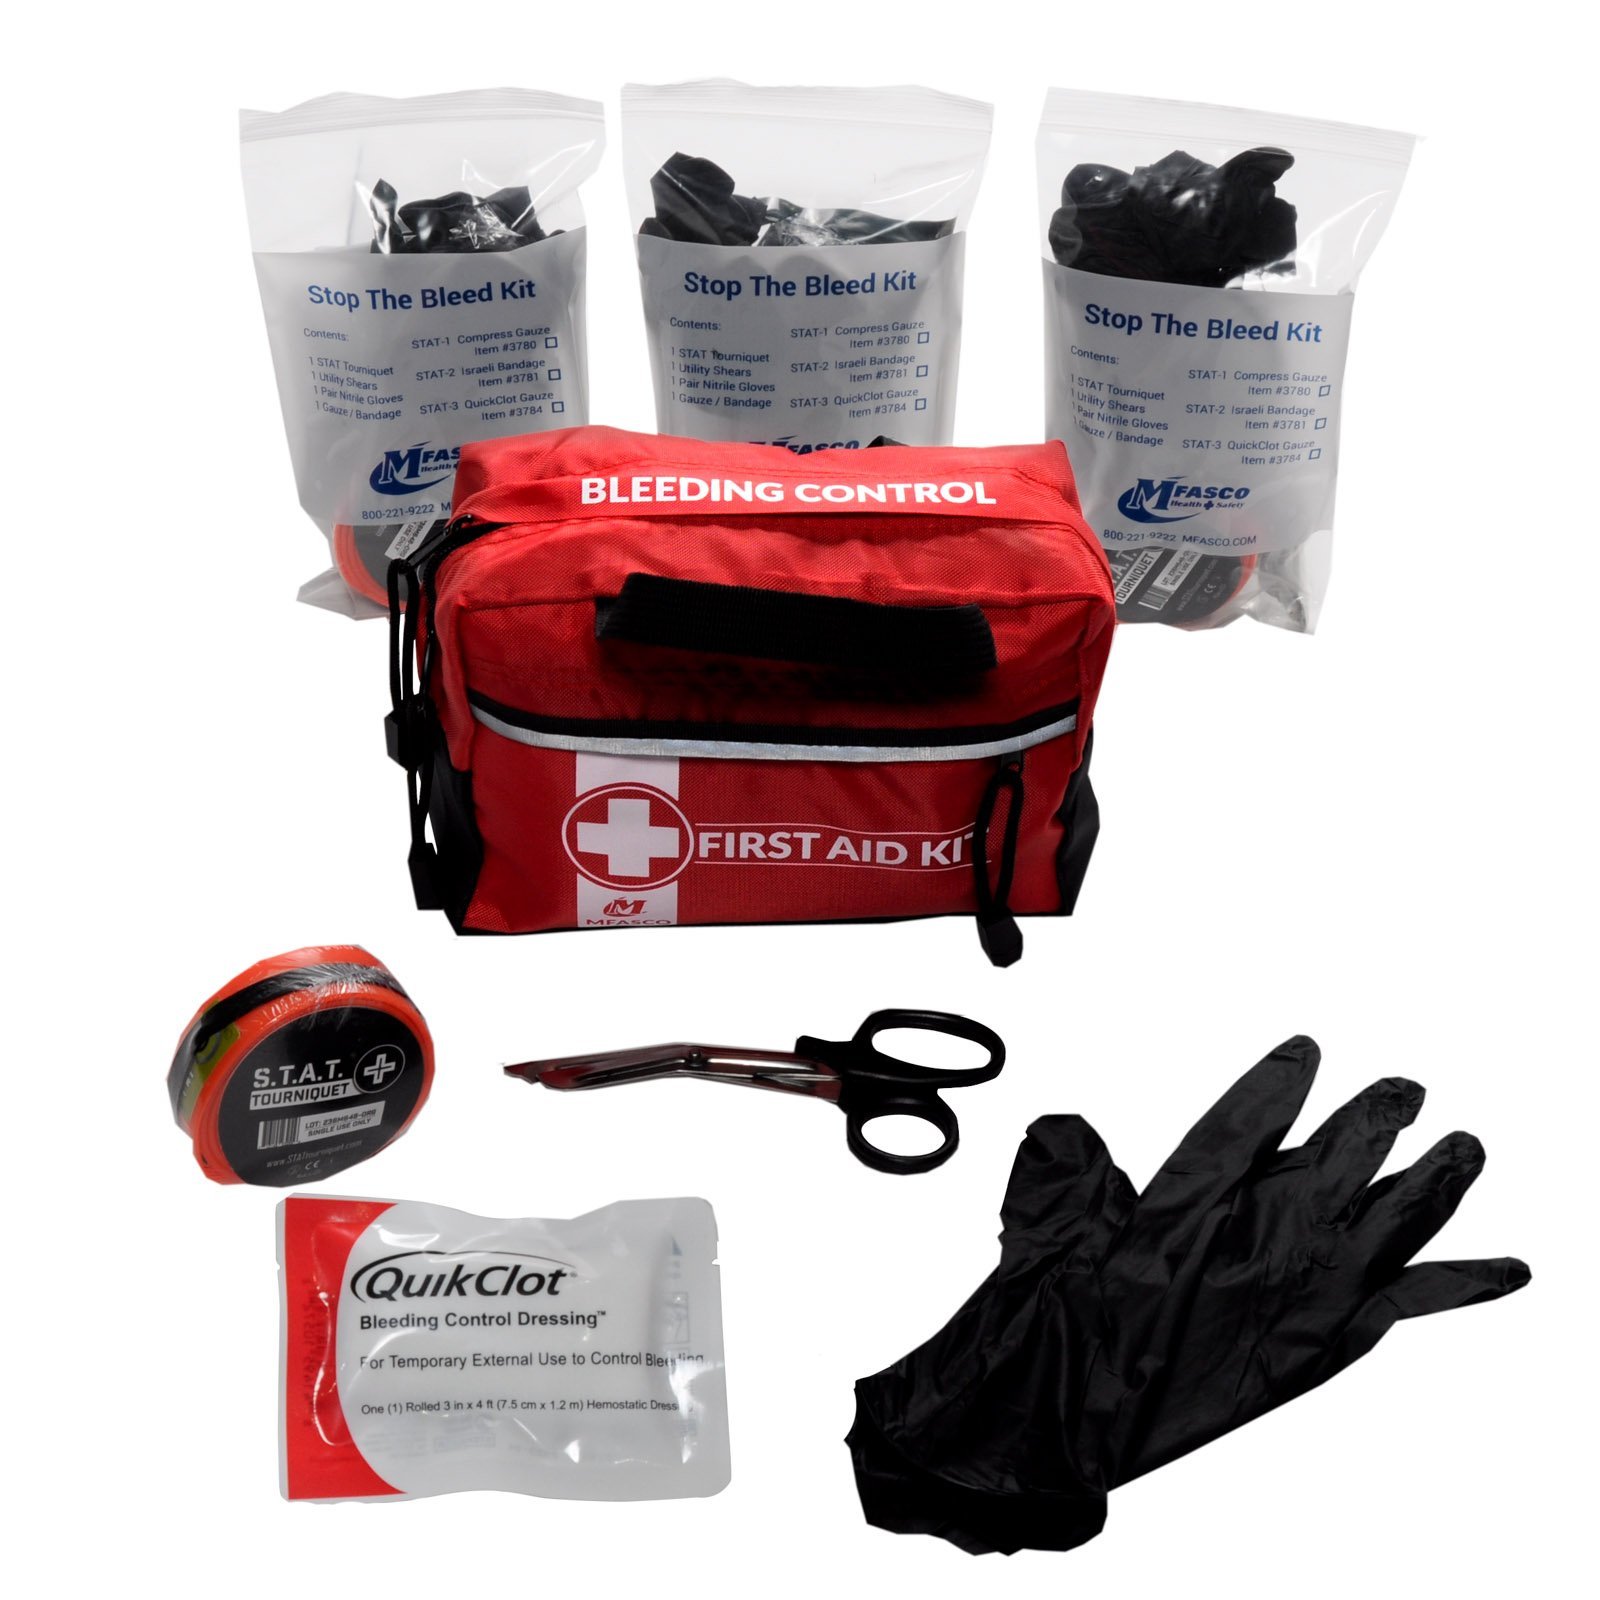 STAT 3 Stop The Bleed Kit With Tourniquet & Quikclot Dressing Red Bag by MFASCO